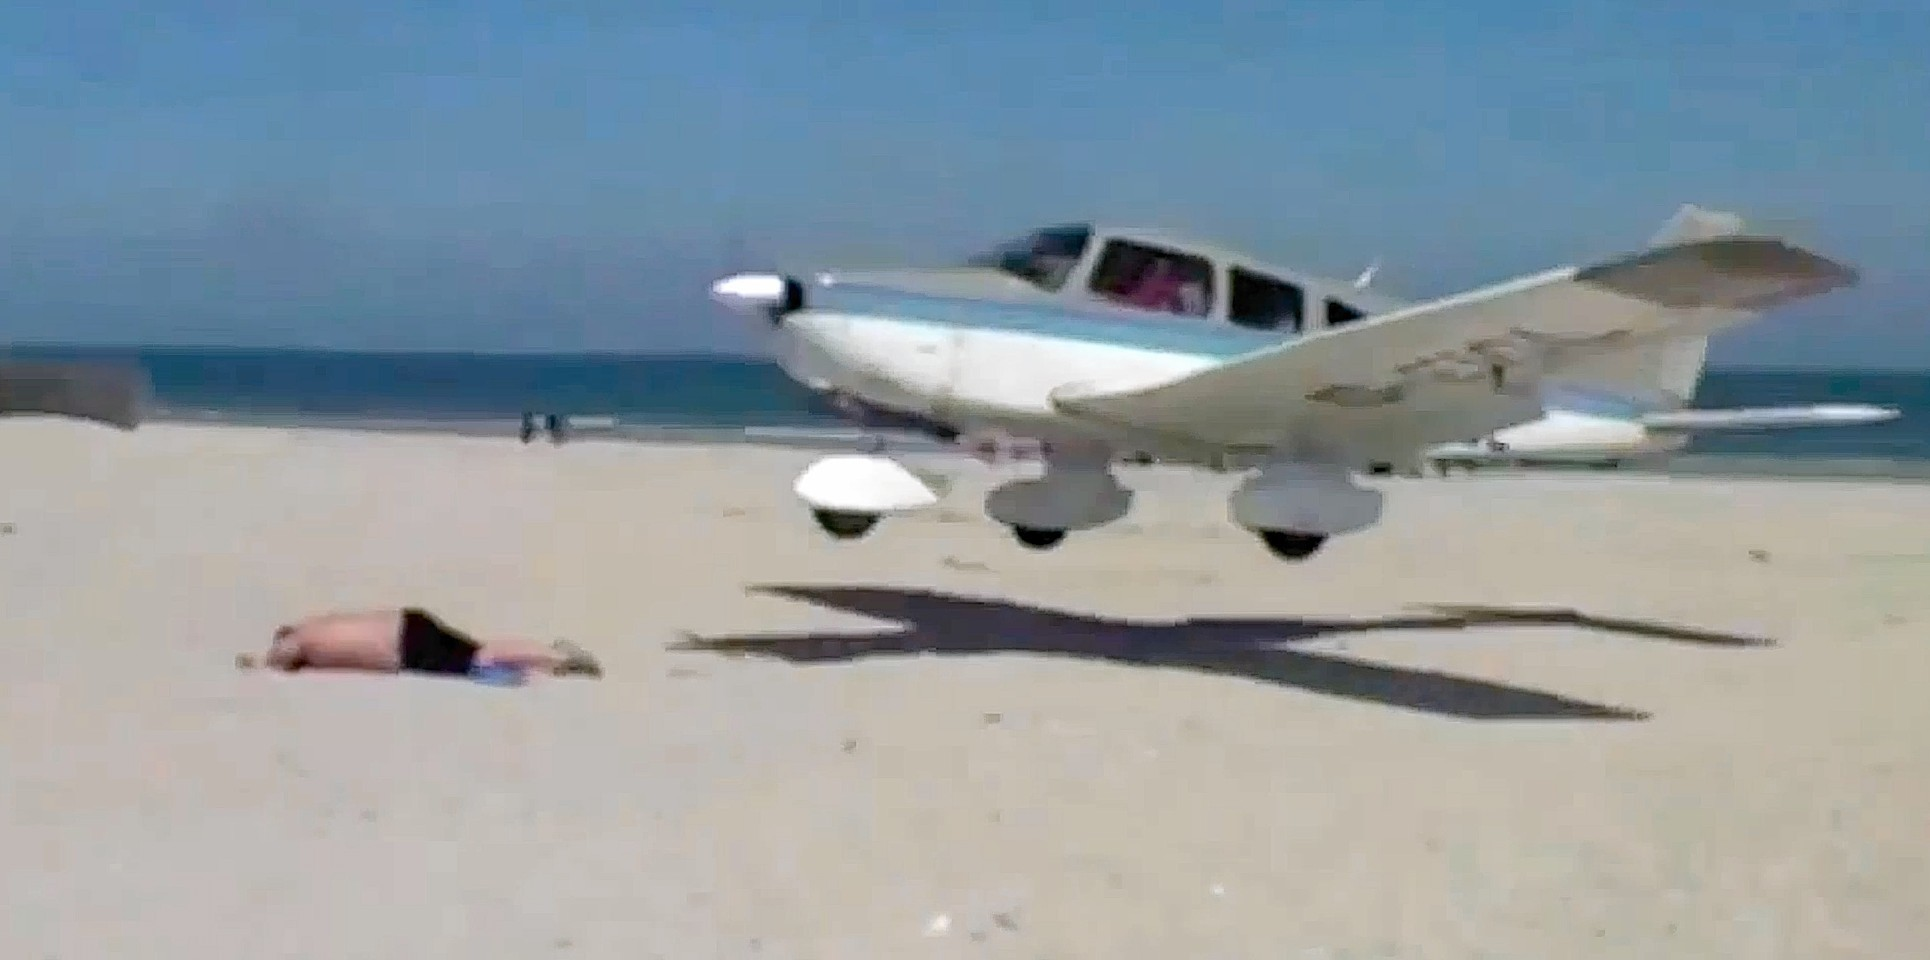 The plane came in to land, just missing a sunbather on a German beach